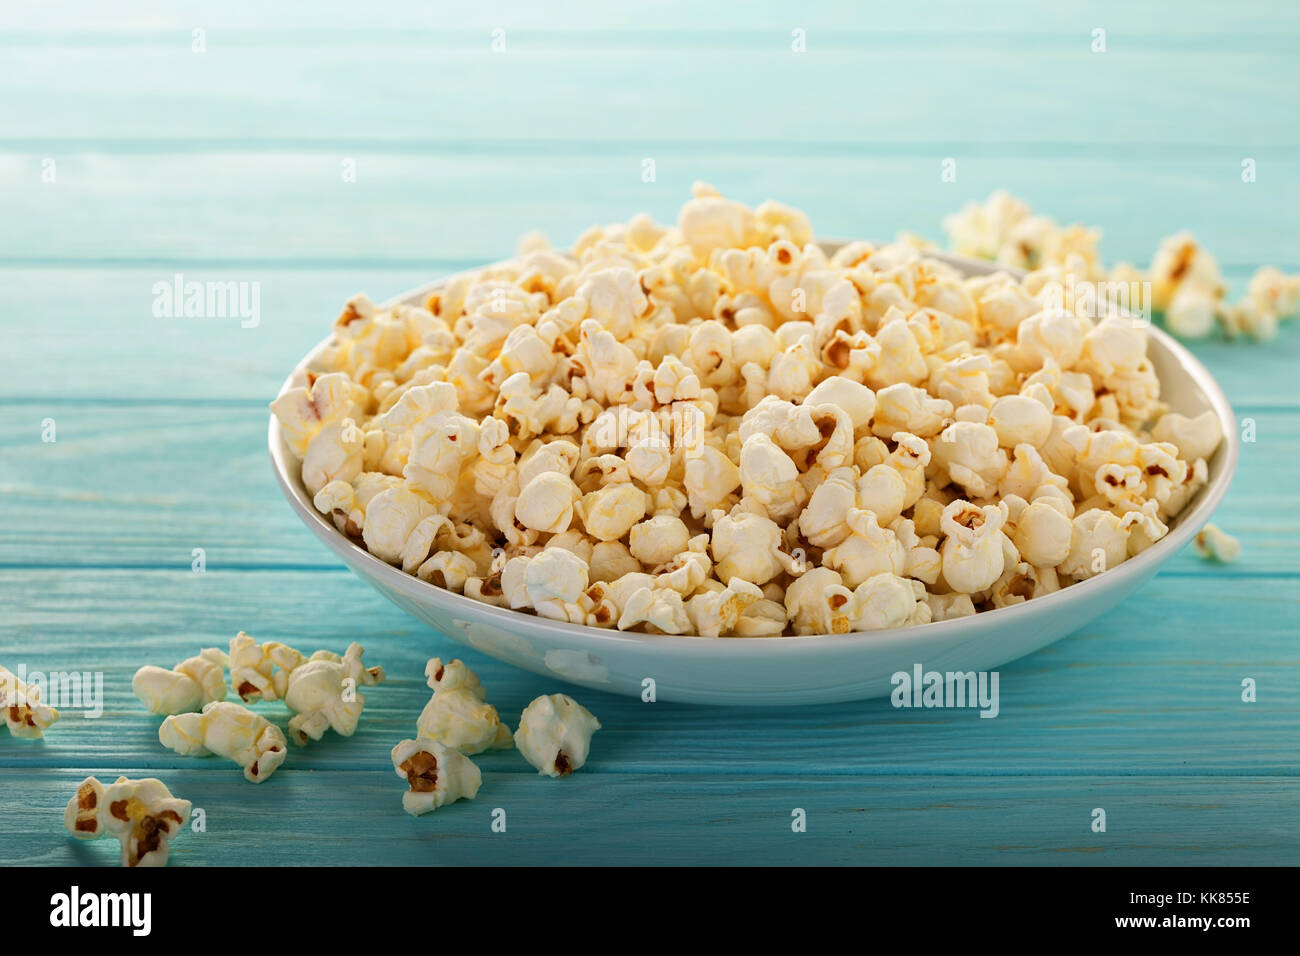 Cheddar cheese popcorn in a white bowl - Stock Image